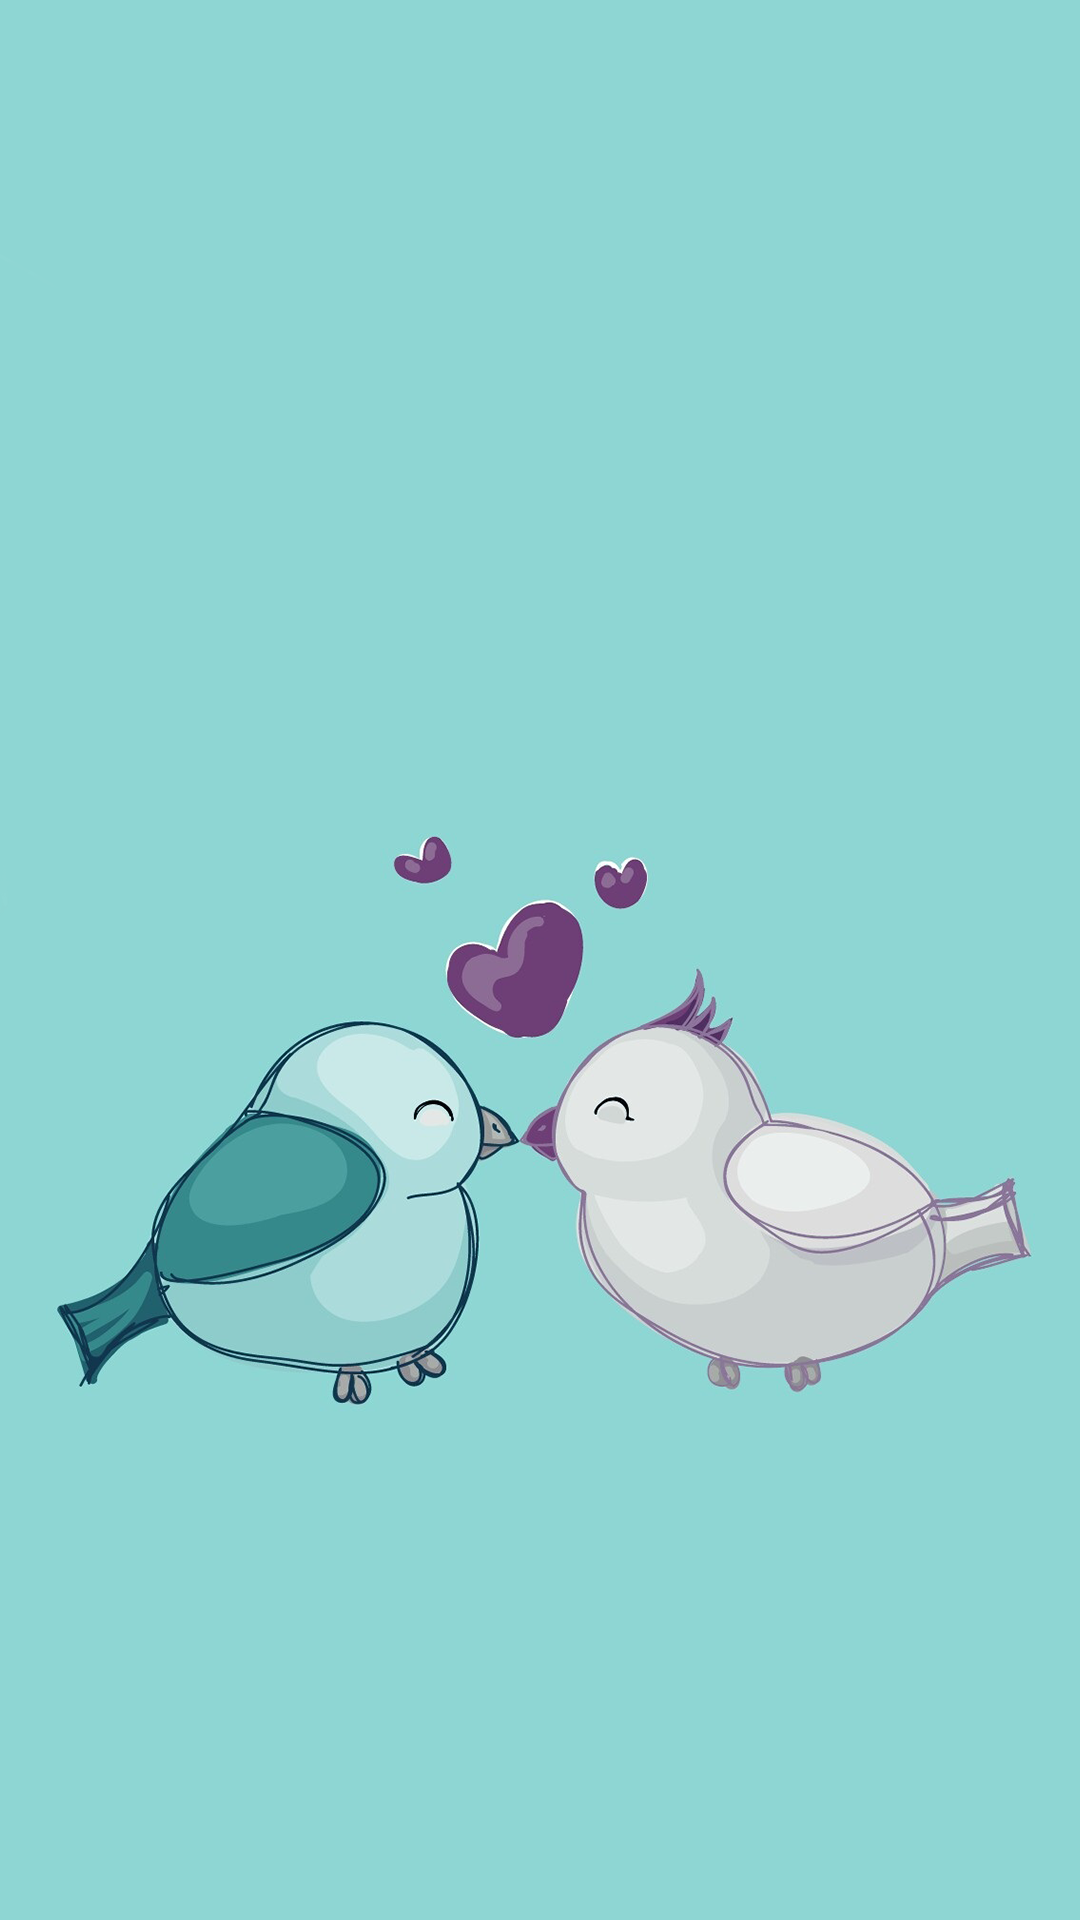 Ultra Hd Love Birds Wallpaper For Your Mobile Phone 0162